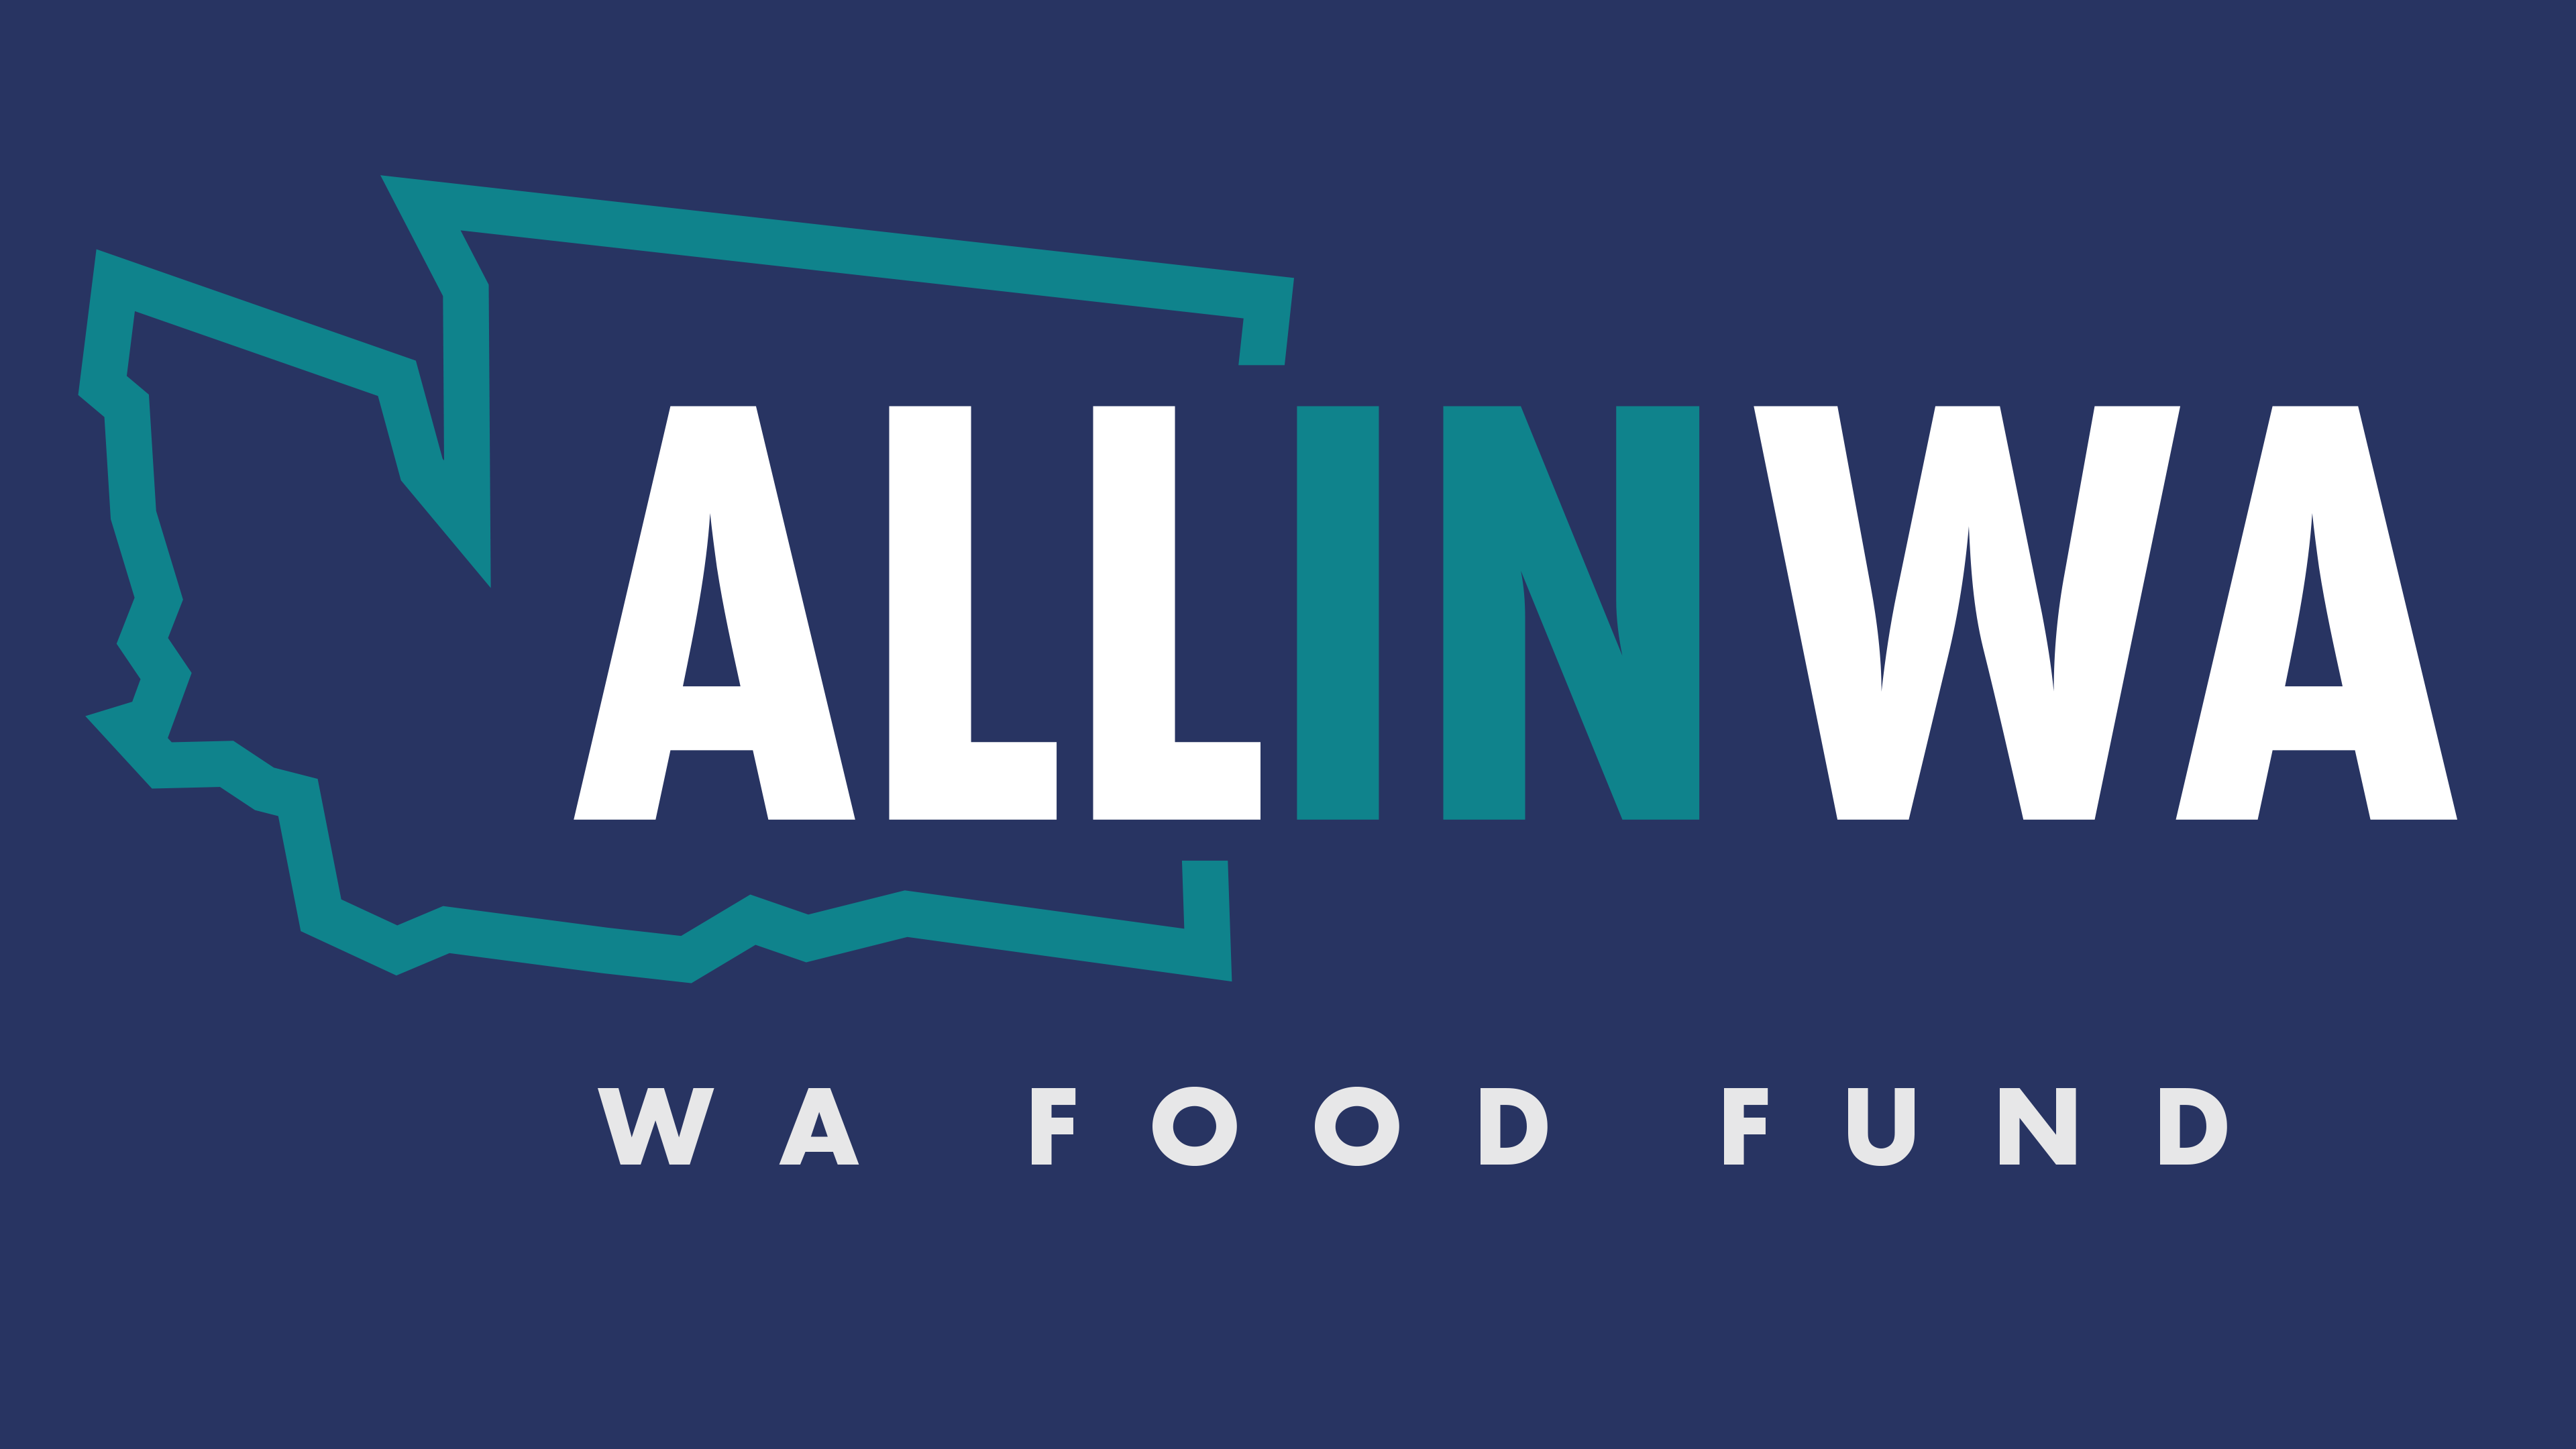 All In WA logo on dark blue background with WA Food Fund listed as a partner name underneath